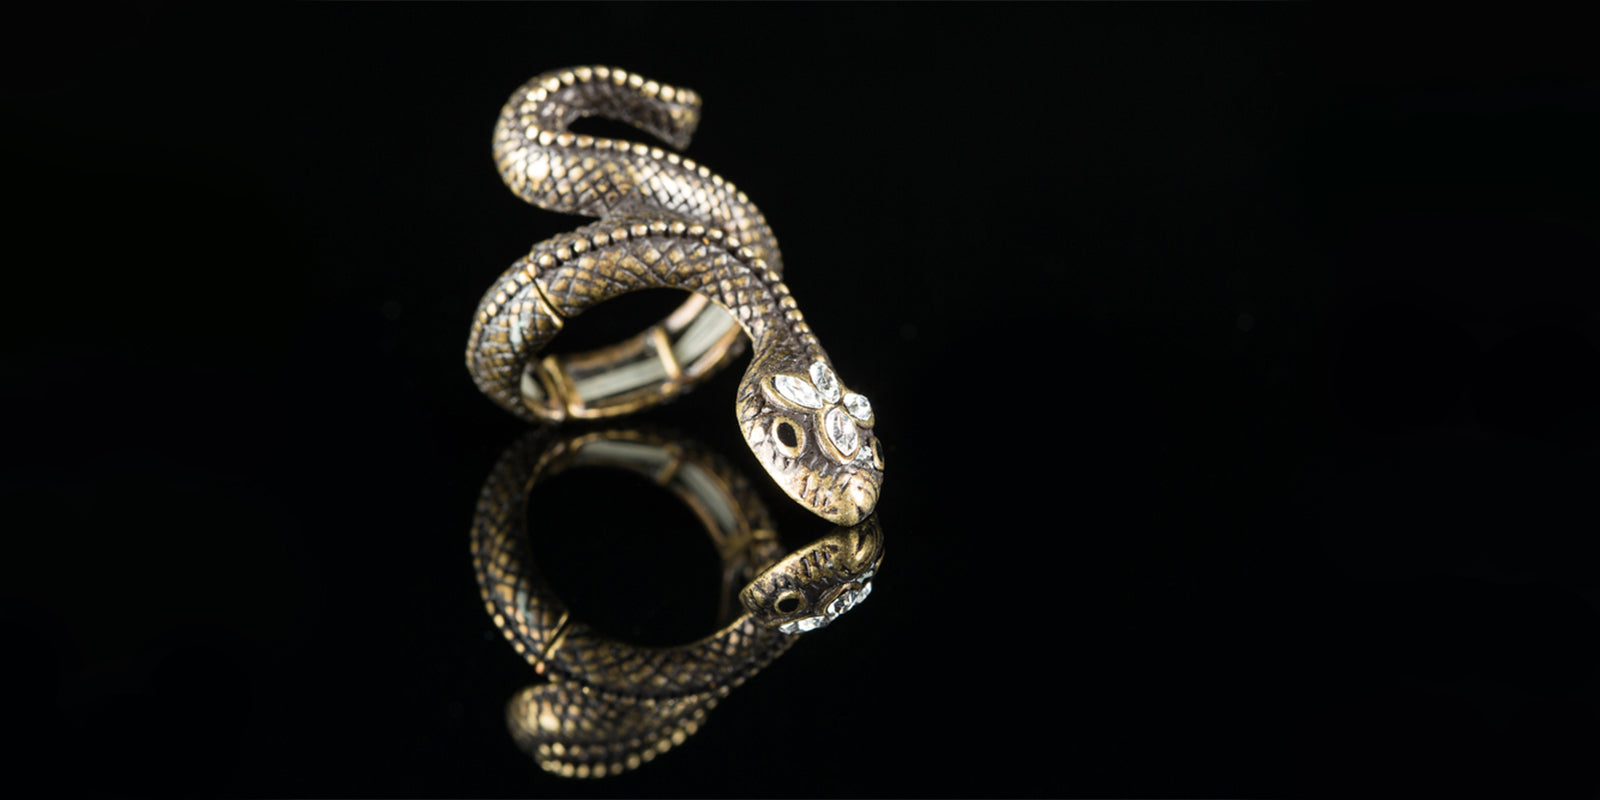 Snake ring with diamonds